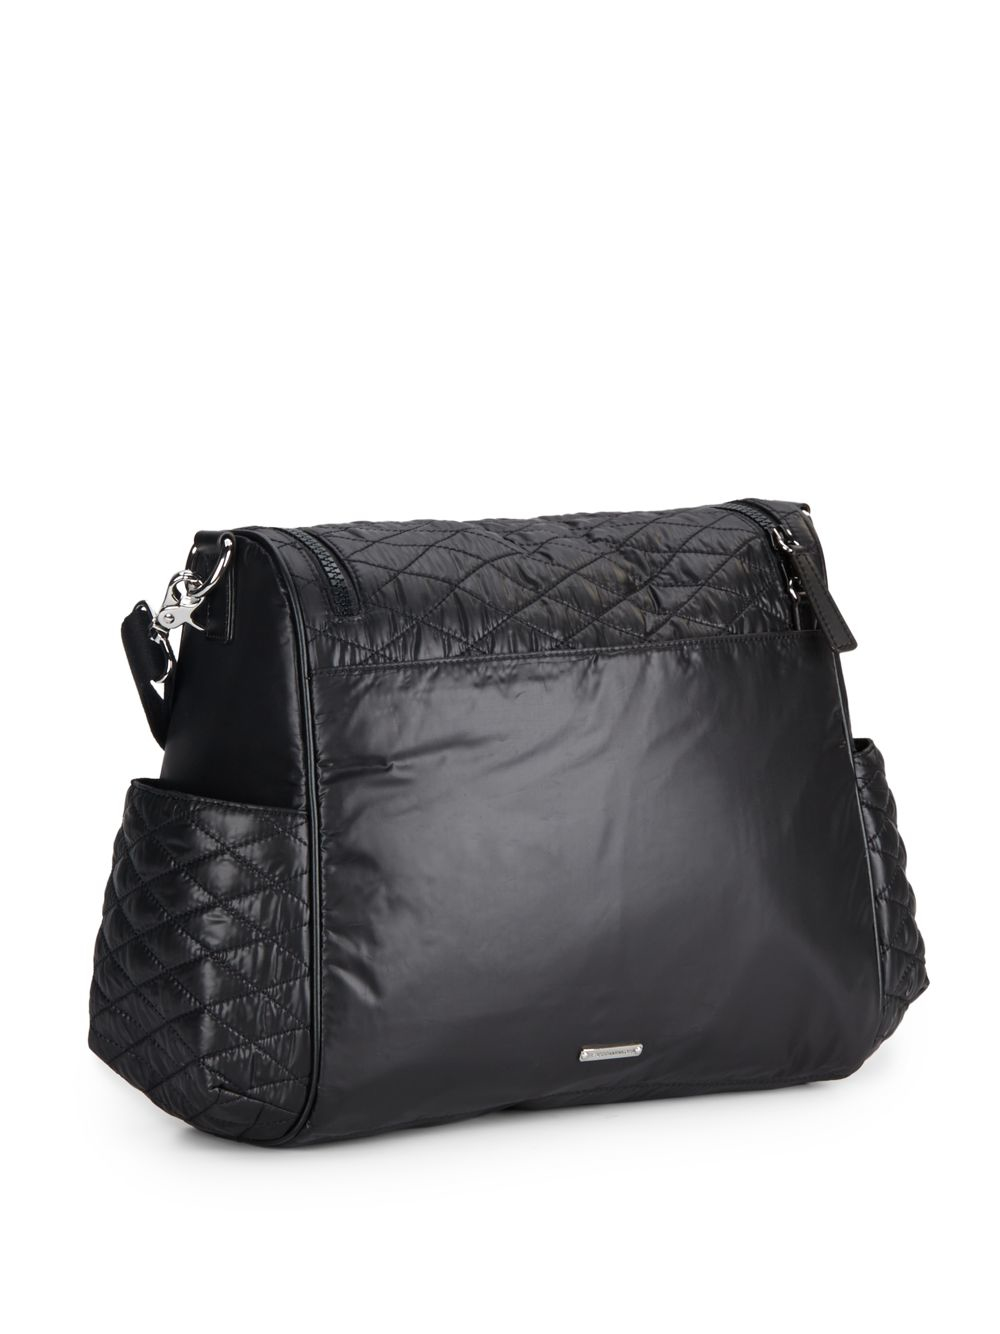 Lyst - Rebecca minkoff Jude Quilted Diaper Bag in Black : black quilted diaper bag - Adamdwight.com